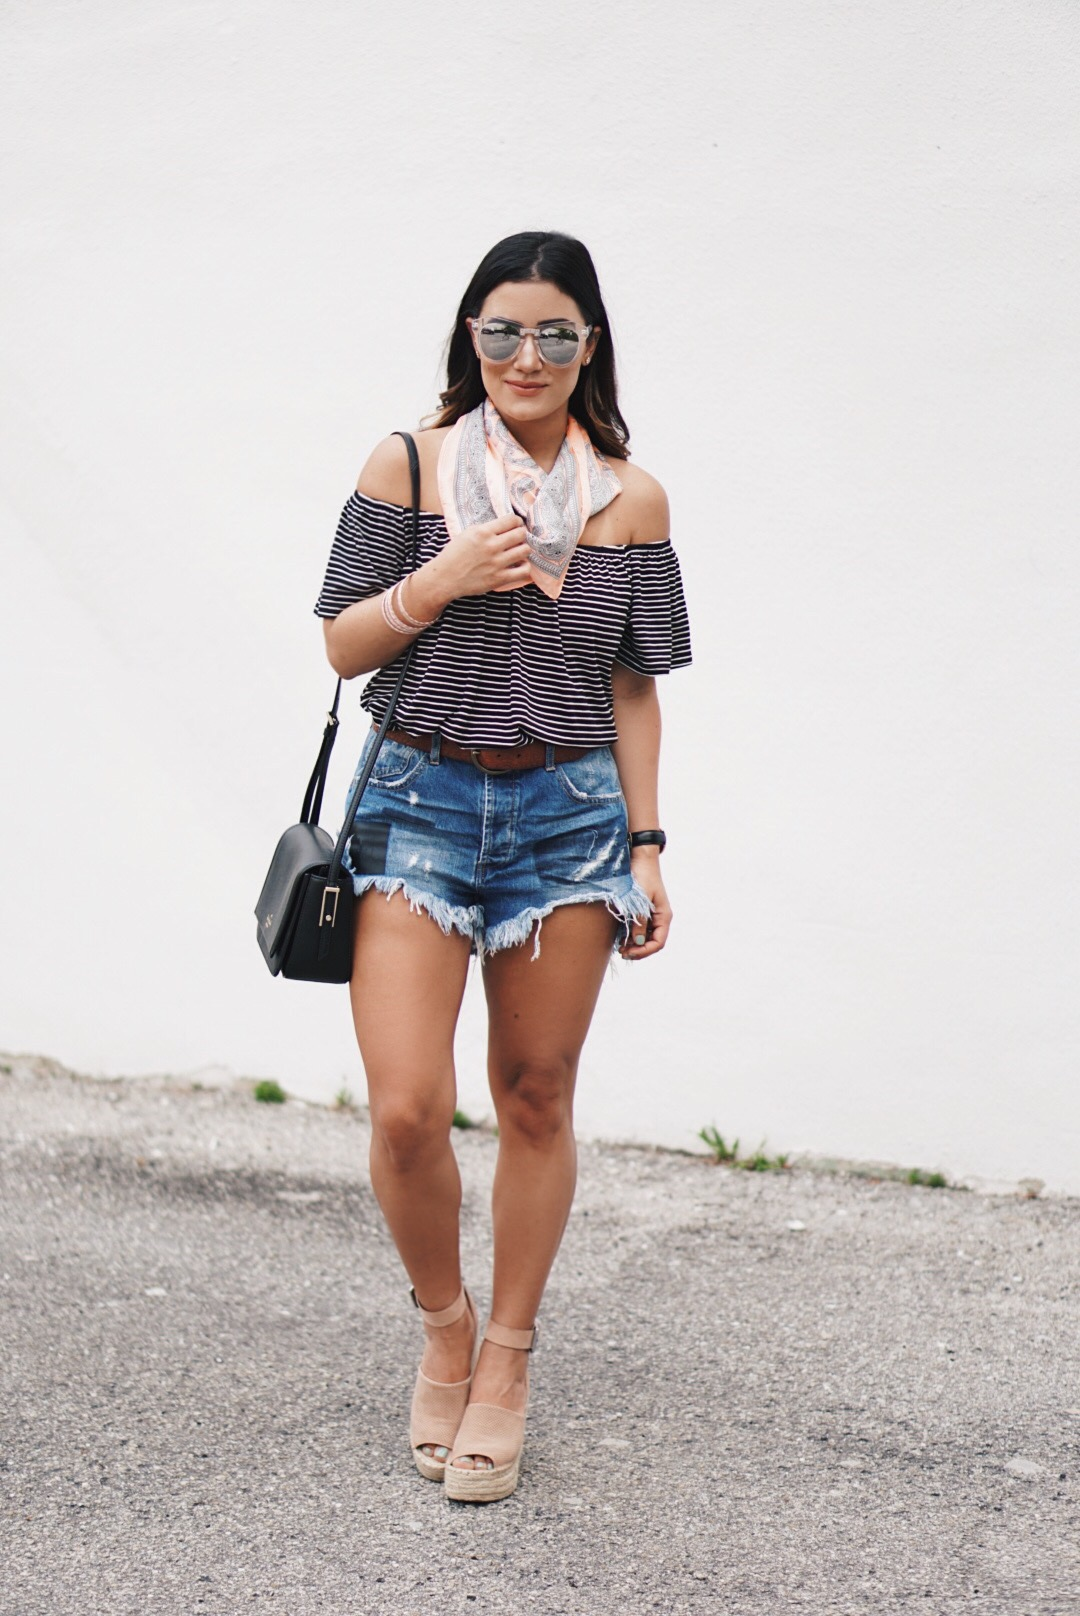 Sugar Love Chic blogger Krista Perez styles a Cutoffs and Off Shoulder Tops outfit